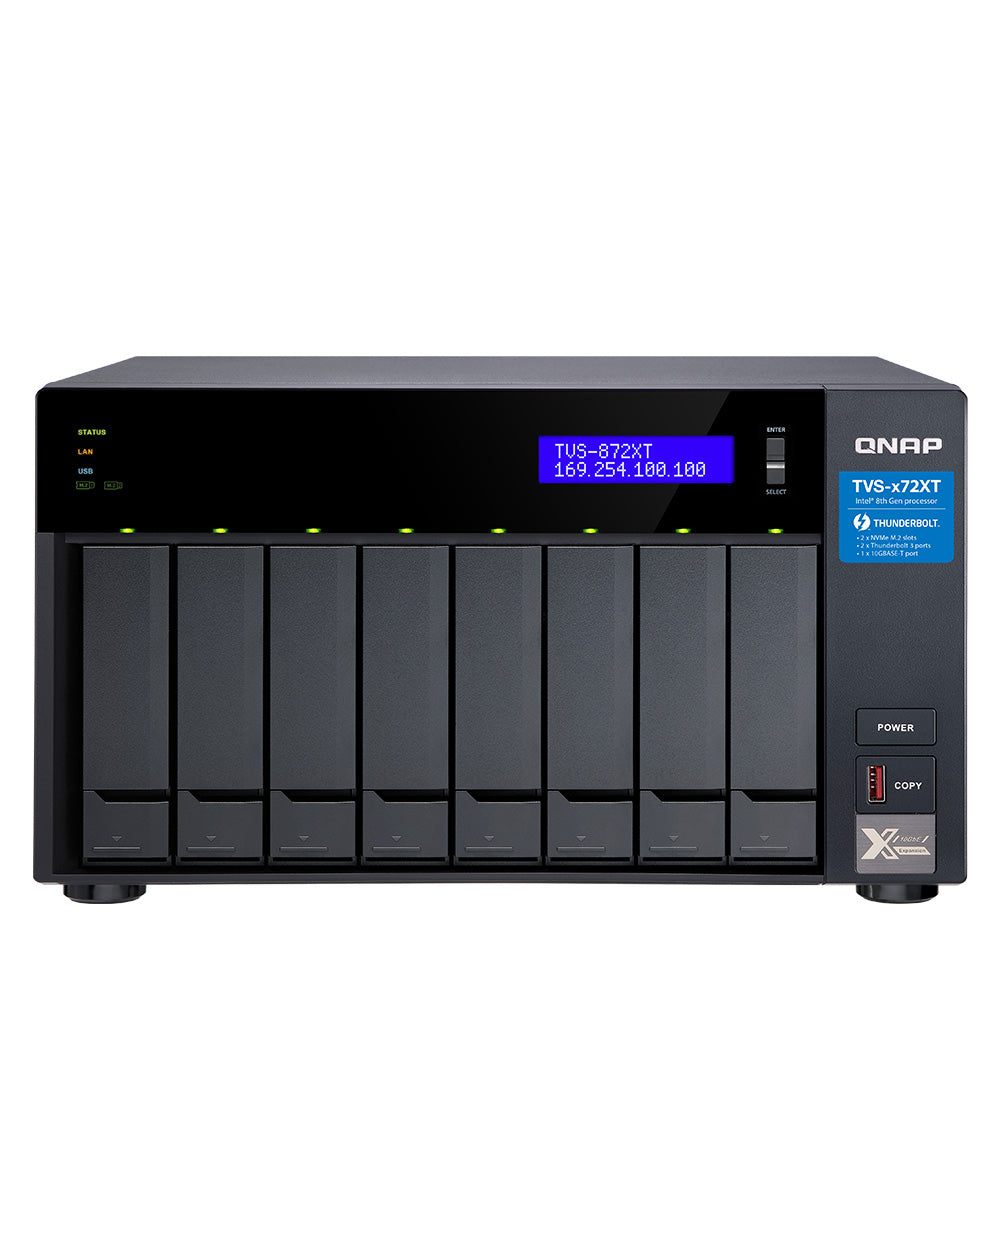 QNAP TVS-872XT-i5-32G RAM upgrade 8 Bay Diskless NAS